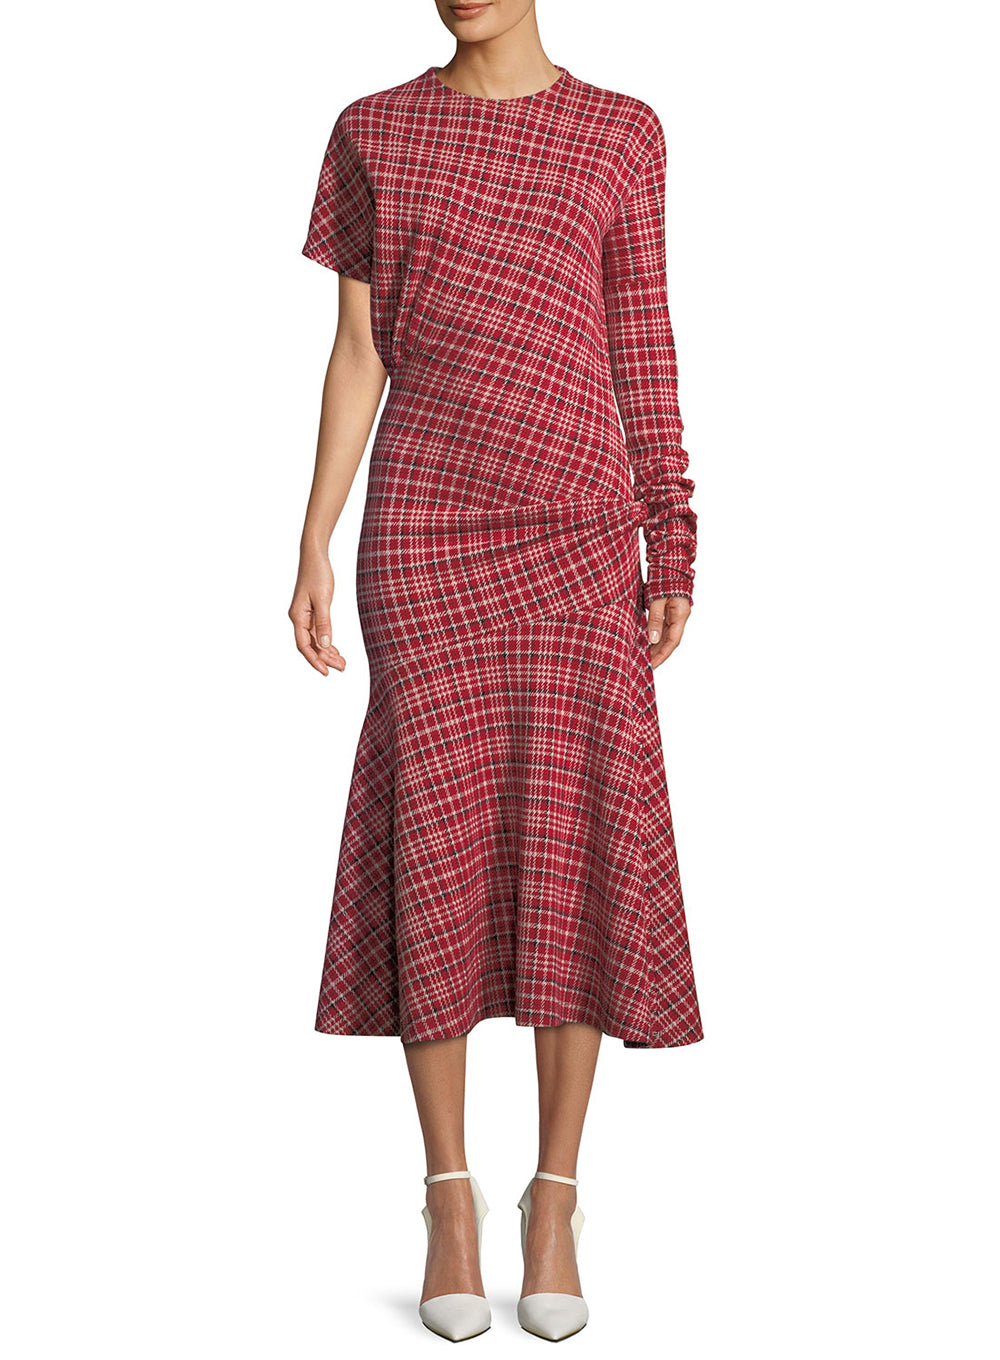 CALVIN KLEIN 205W39NYC | Asymmetric Plaid Midi Dress Flounce Hem in Red